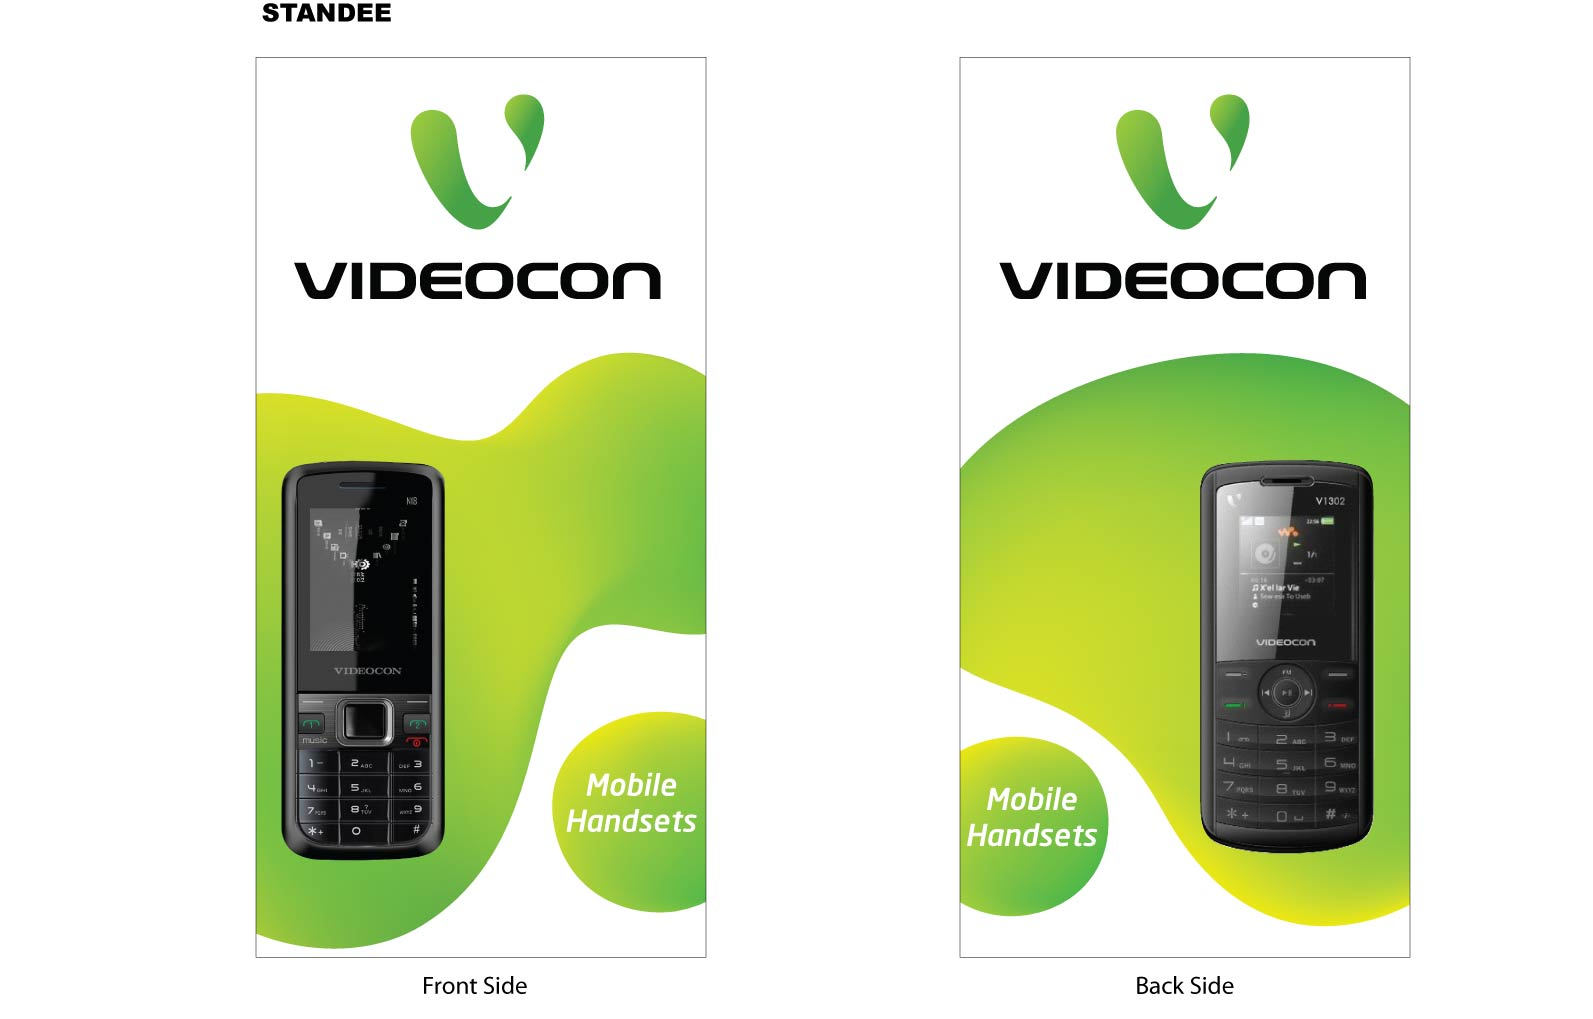 videocon industries Find company research, competitor information, contact details & financial data for videocon industries limited get the latest business insights from d&b hoovers.